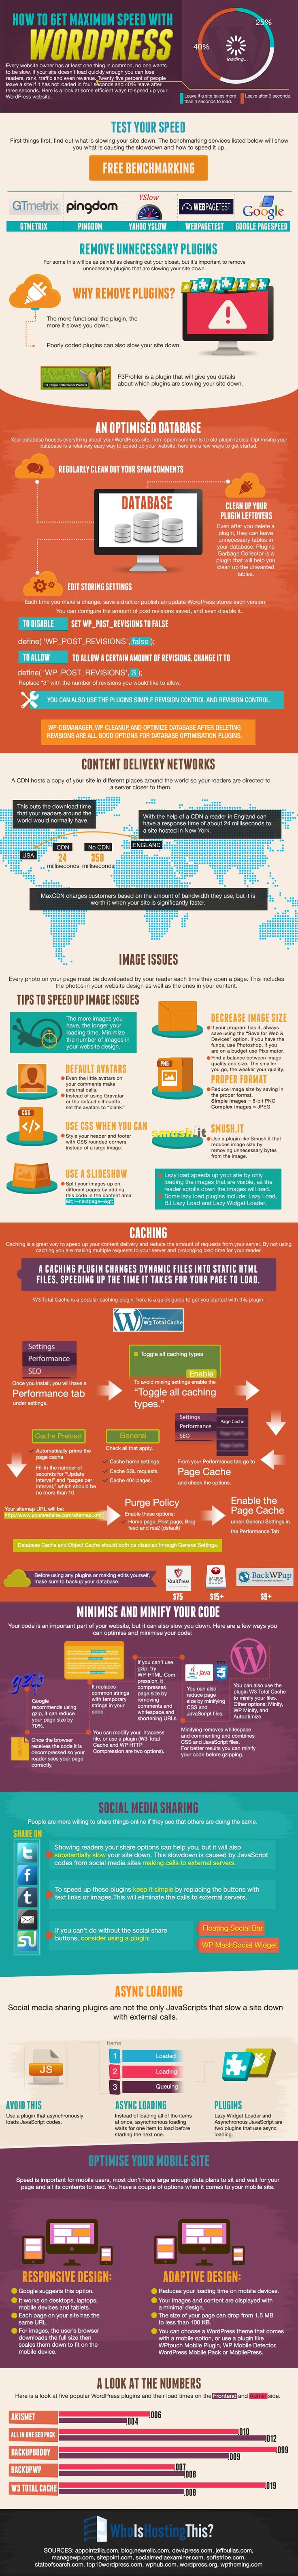 How to Speed Up WordPress. Infographic